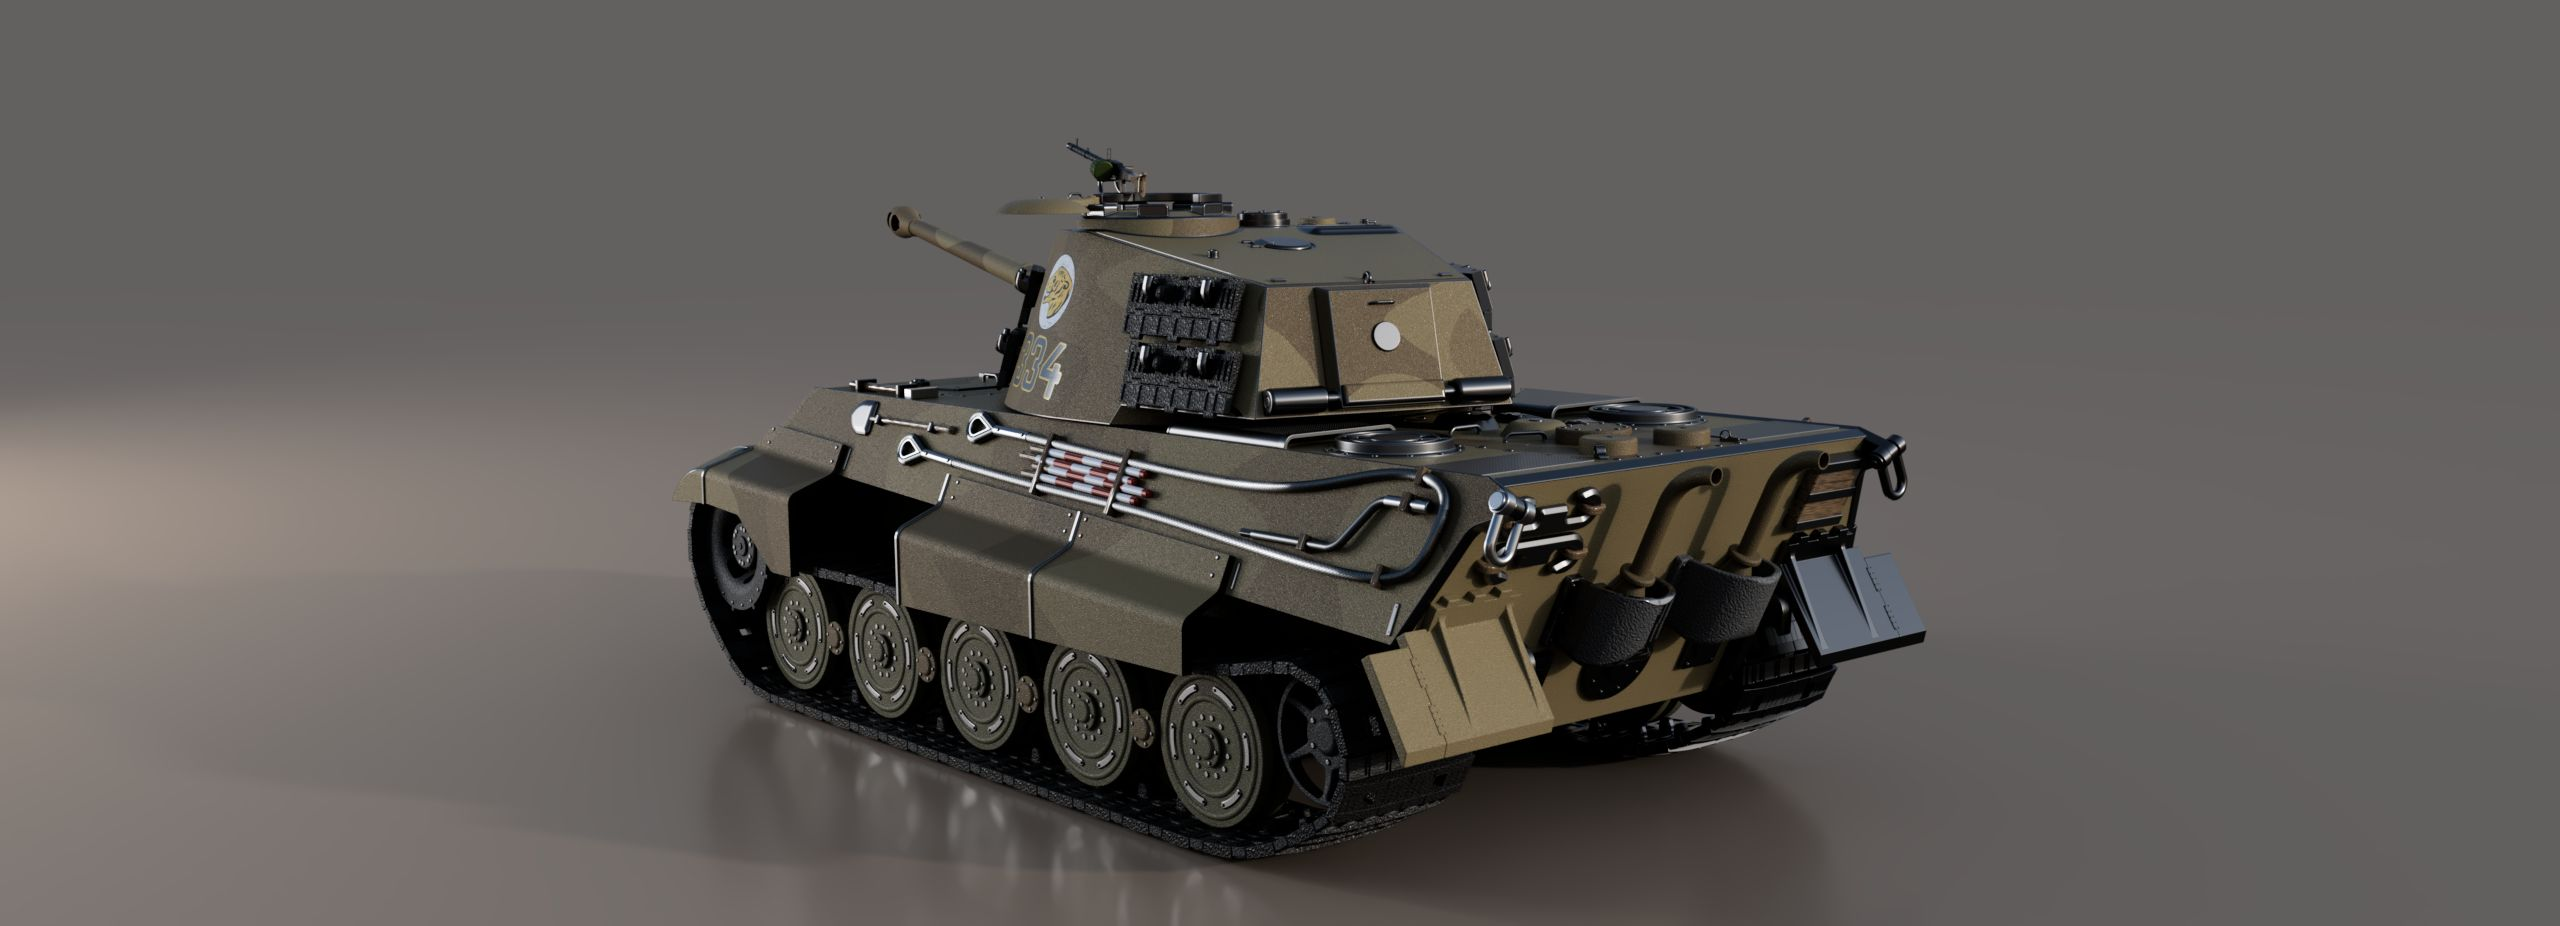 Tiger-ii-komplett-wuste-2018-sep-20-08-14-43am-000-customizedview14532376325-png-3500-3500